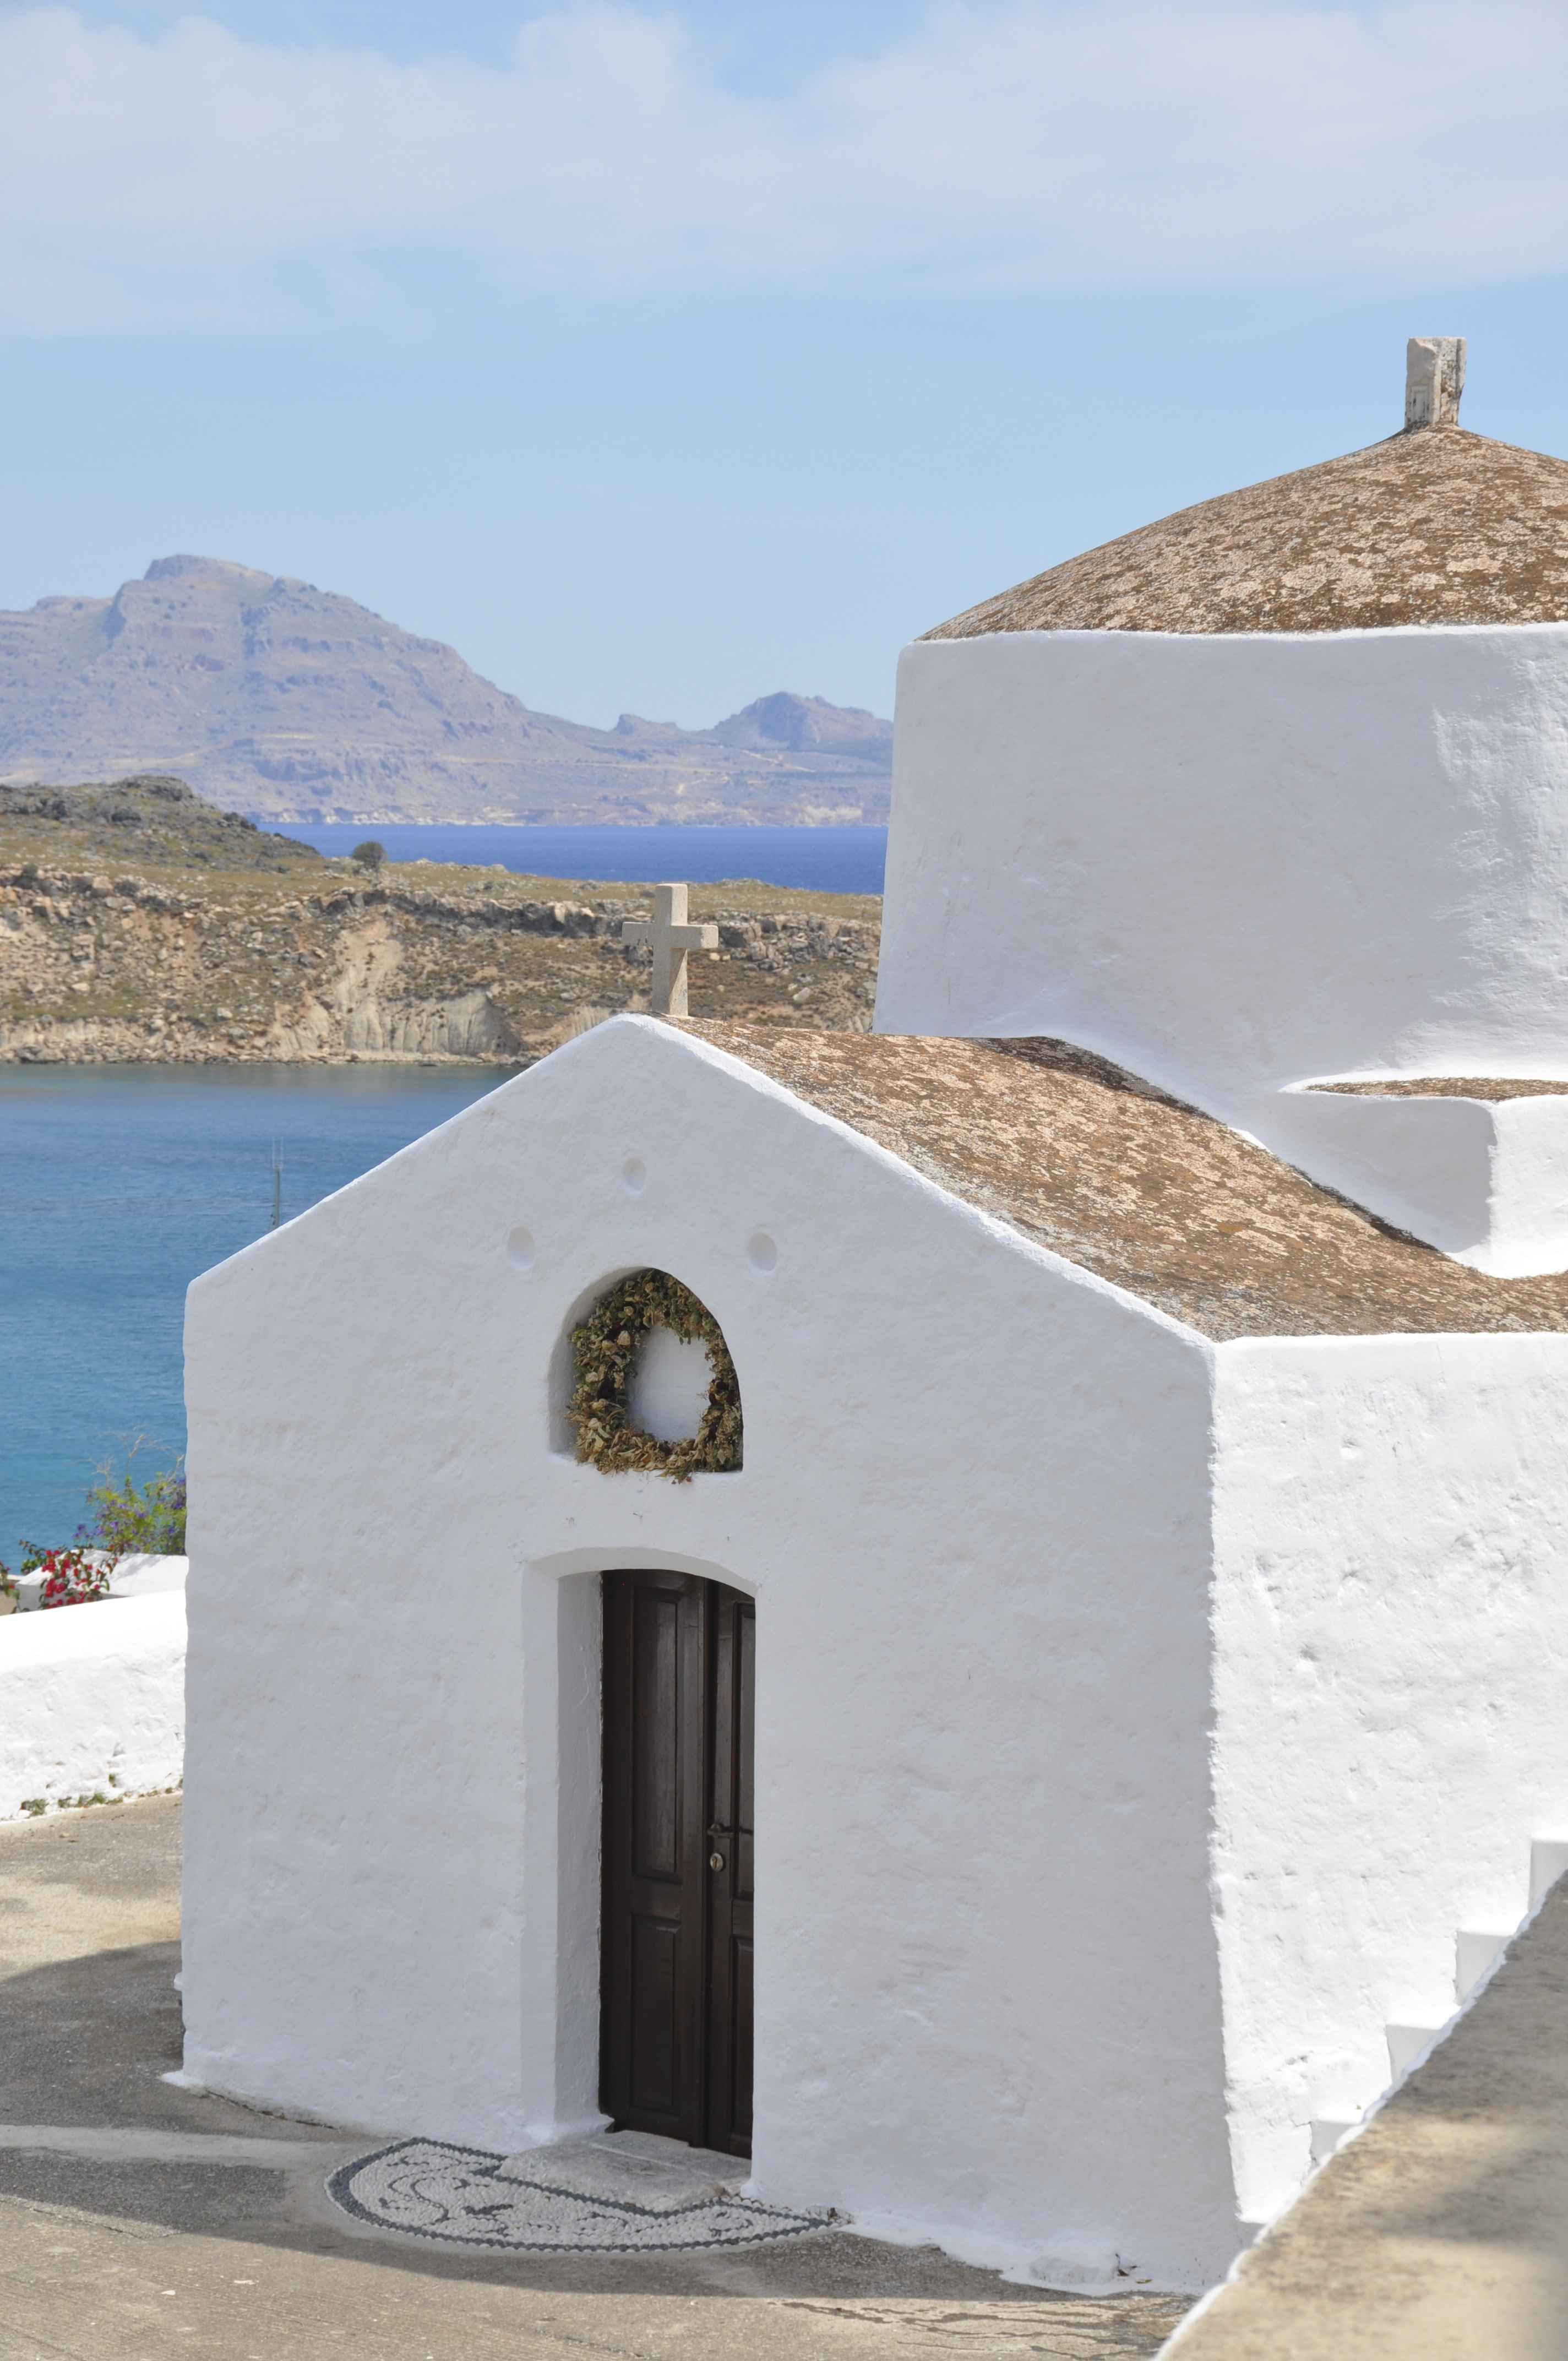 White washed church building by the sea in Lindos - Rhodes - Greece